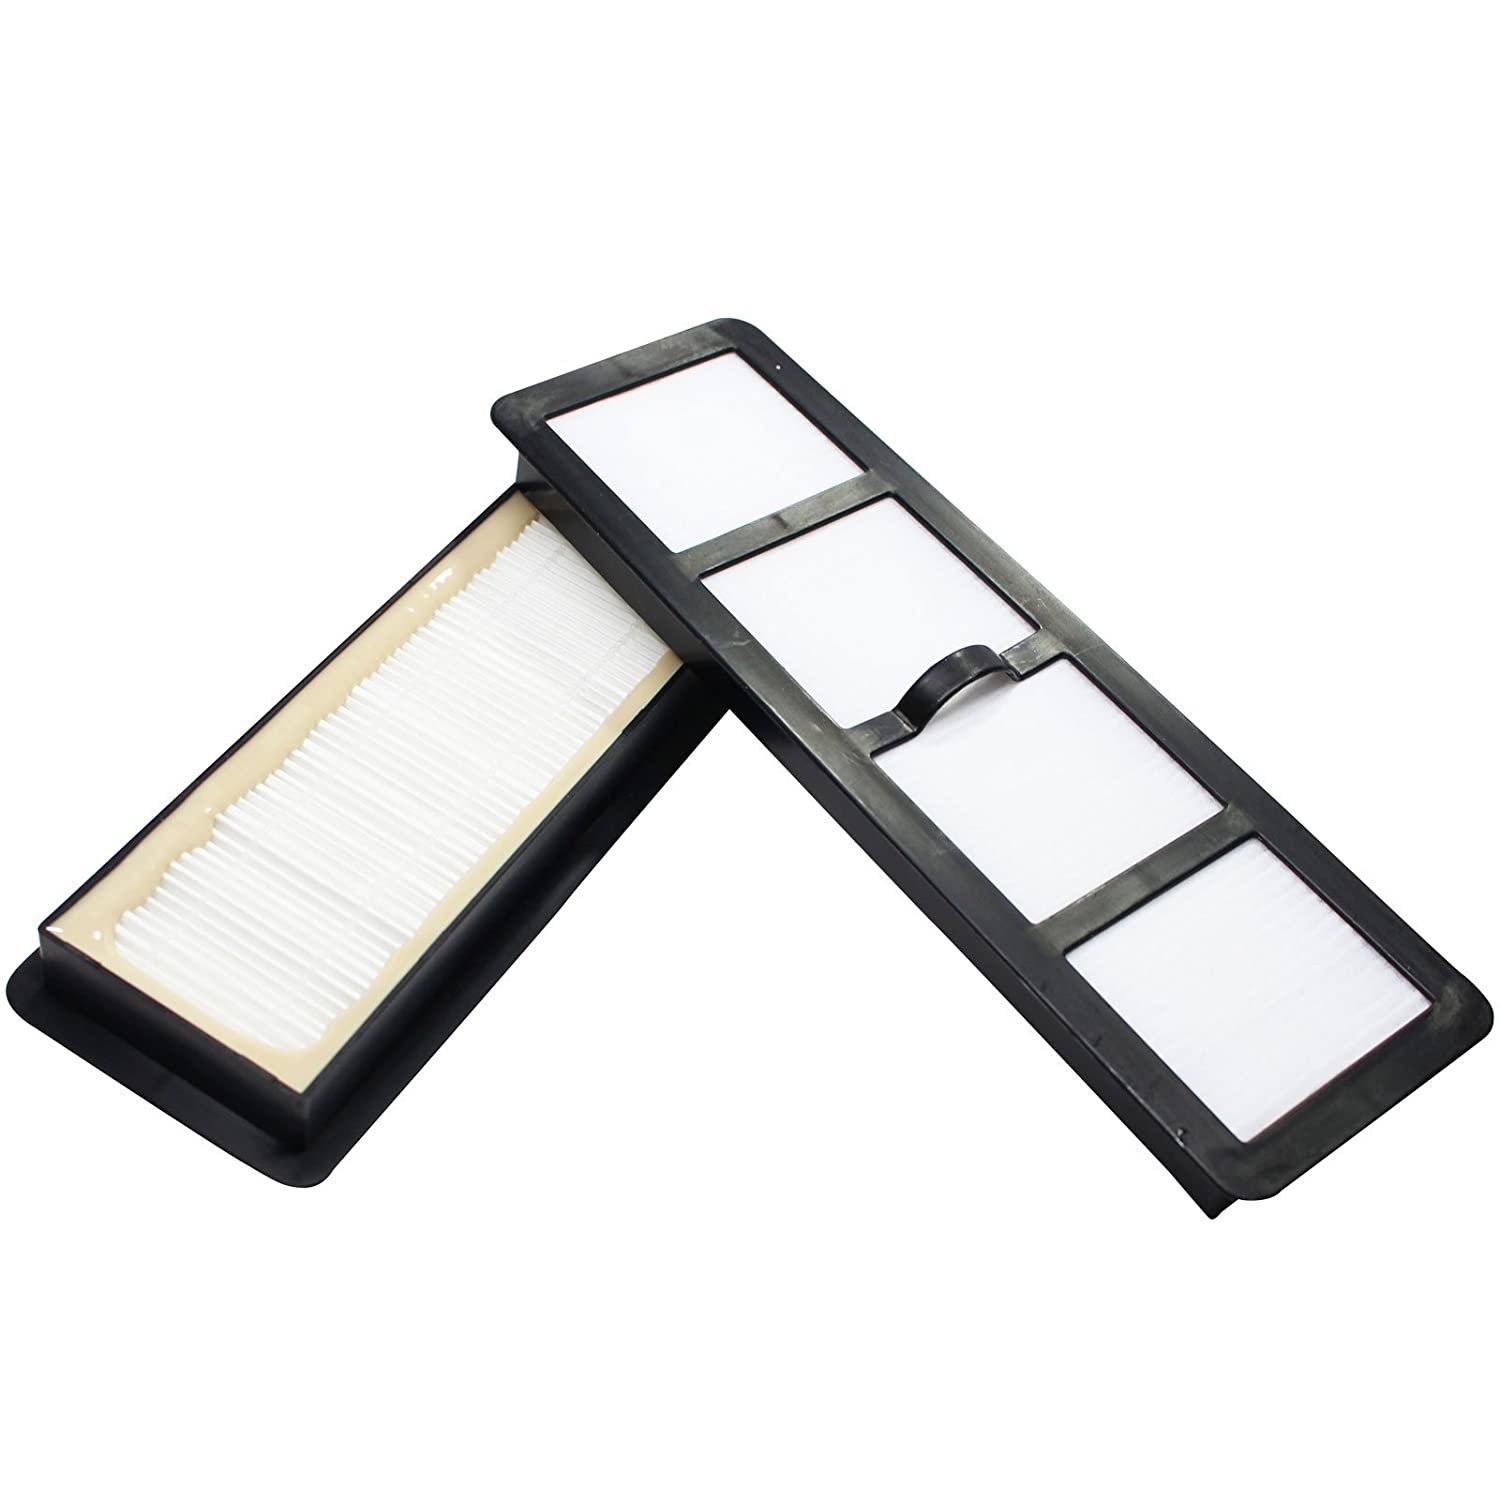 2-Pack Replacement EF-6 Filter 69963 for Eureka - Compatible with Eureka Airspeed, Eureka AirSpeed AS1000A, Eureka AS1000A, Eureka AS1000, Eureka AS1001A, Eureka AS1051A, Eureka AS1001, Eureka AirSpeed AS1001A, Eureka EF-6, Eureka AS1002A, Eureka AirSpeed AS1000